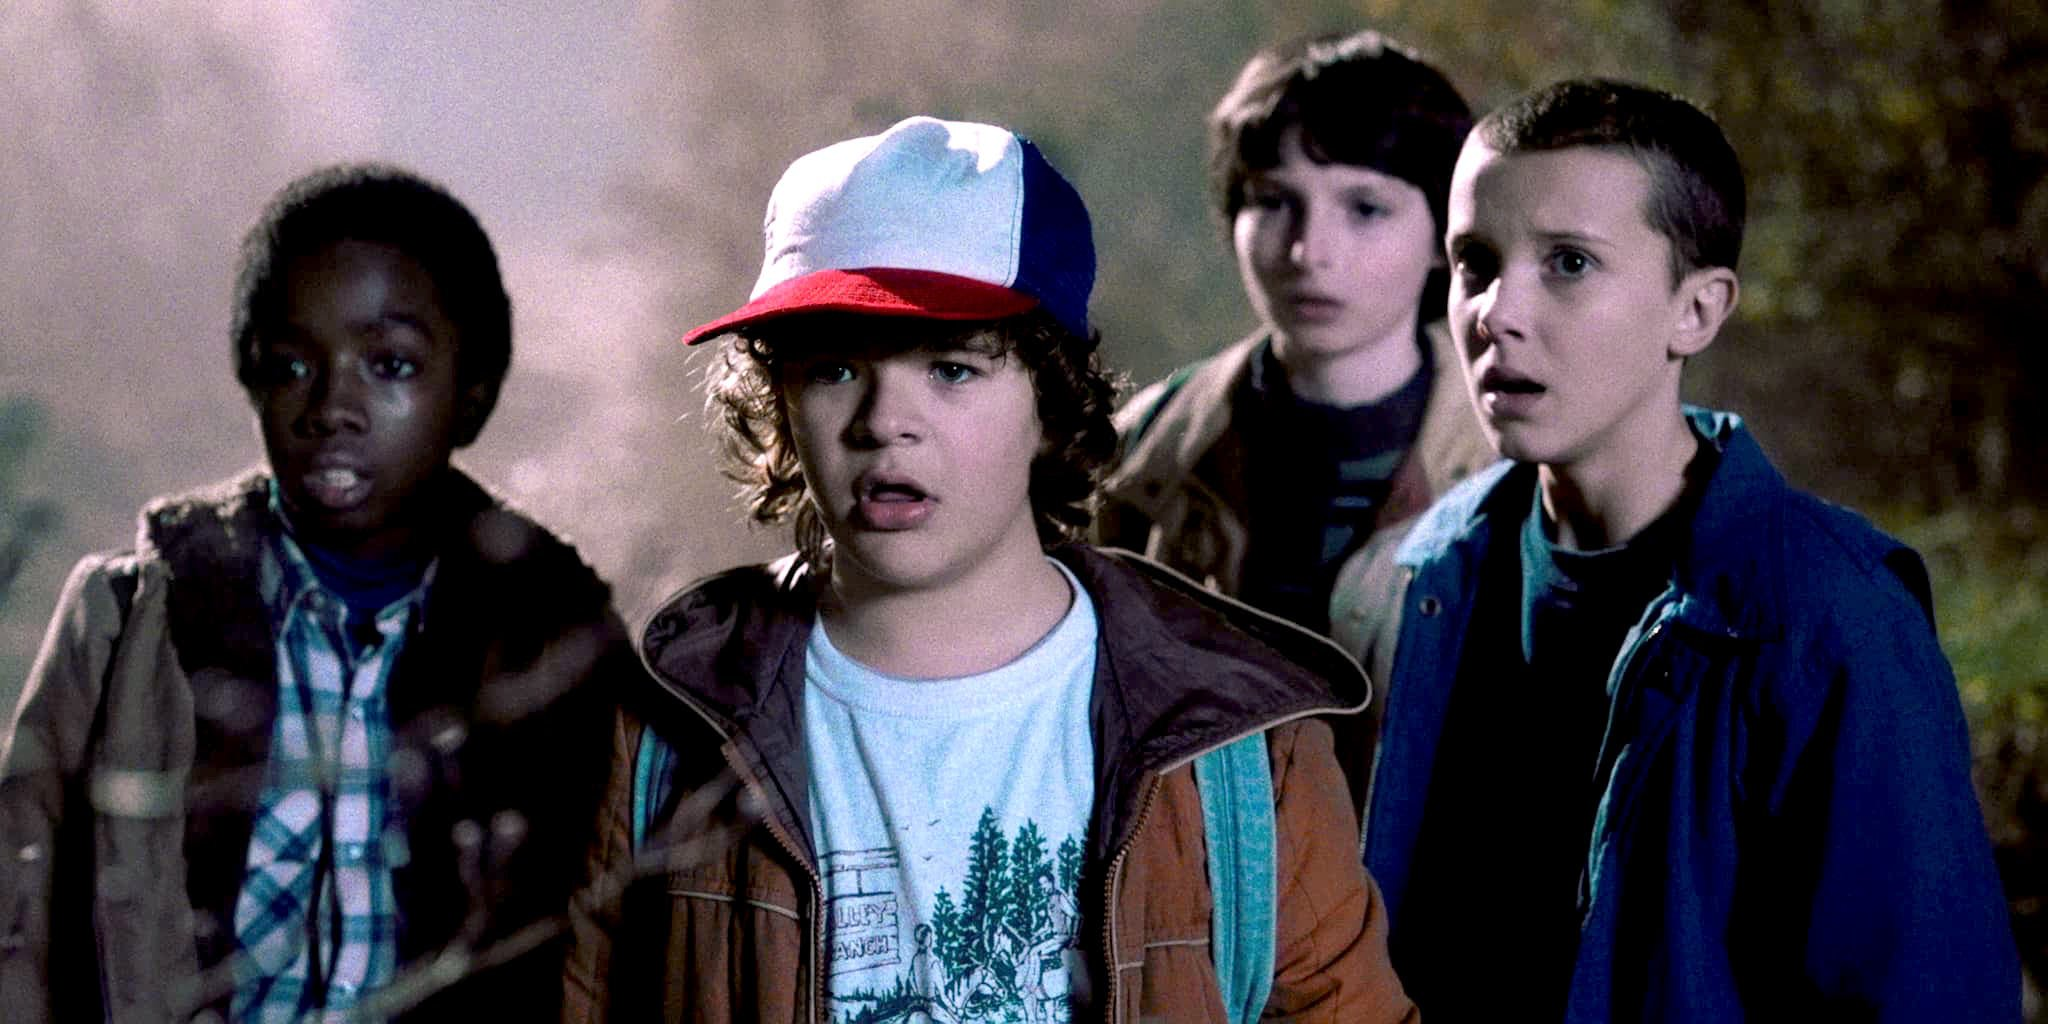 Netflix's 'Stranger Things' kicking up NetFlix ( $NFLX) as a Content is King player